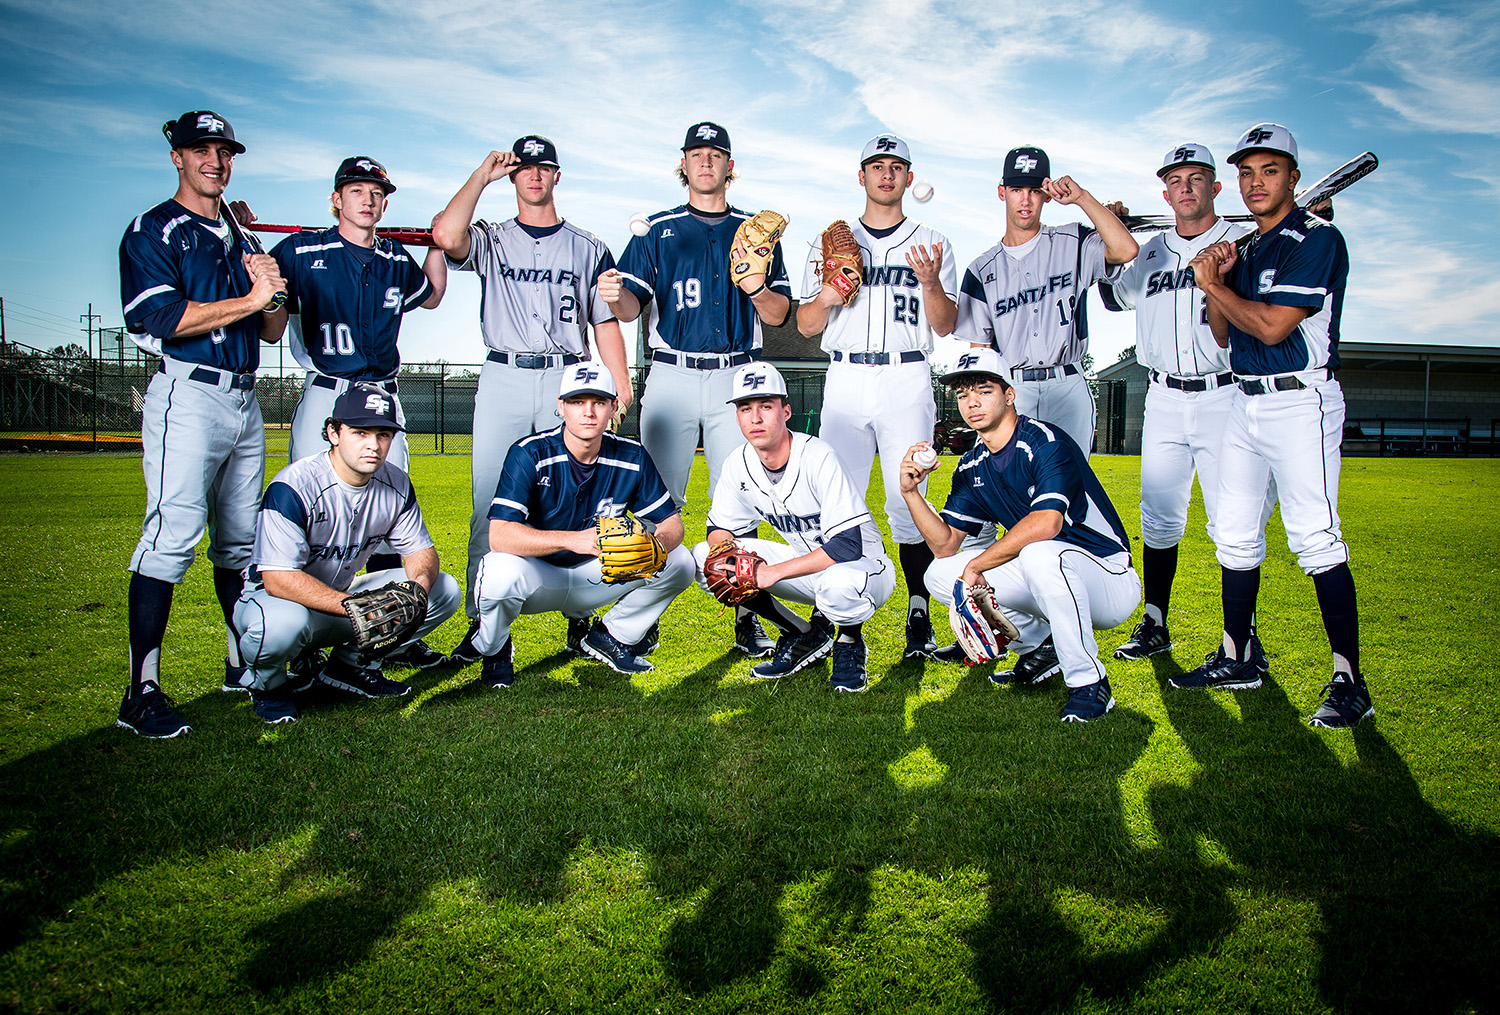 The 12 returning starters for the Santa Fe Saints baseball team pose for photo to be used on the schedule poster on Thursday, Jan. 5, 2017 in Gainesville, Fla. Photo by Matt Stamey/Santa Fe College) ***Subjects Have Releases***